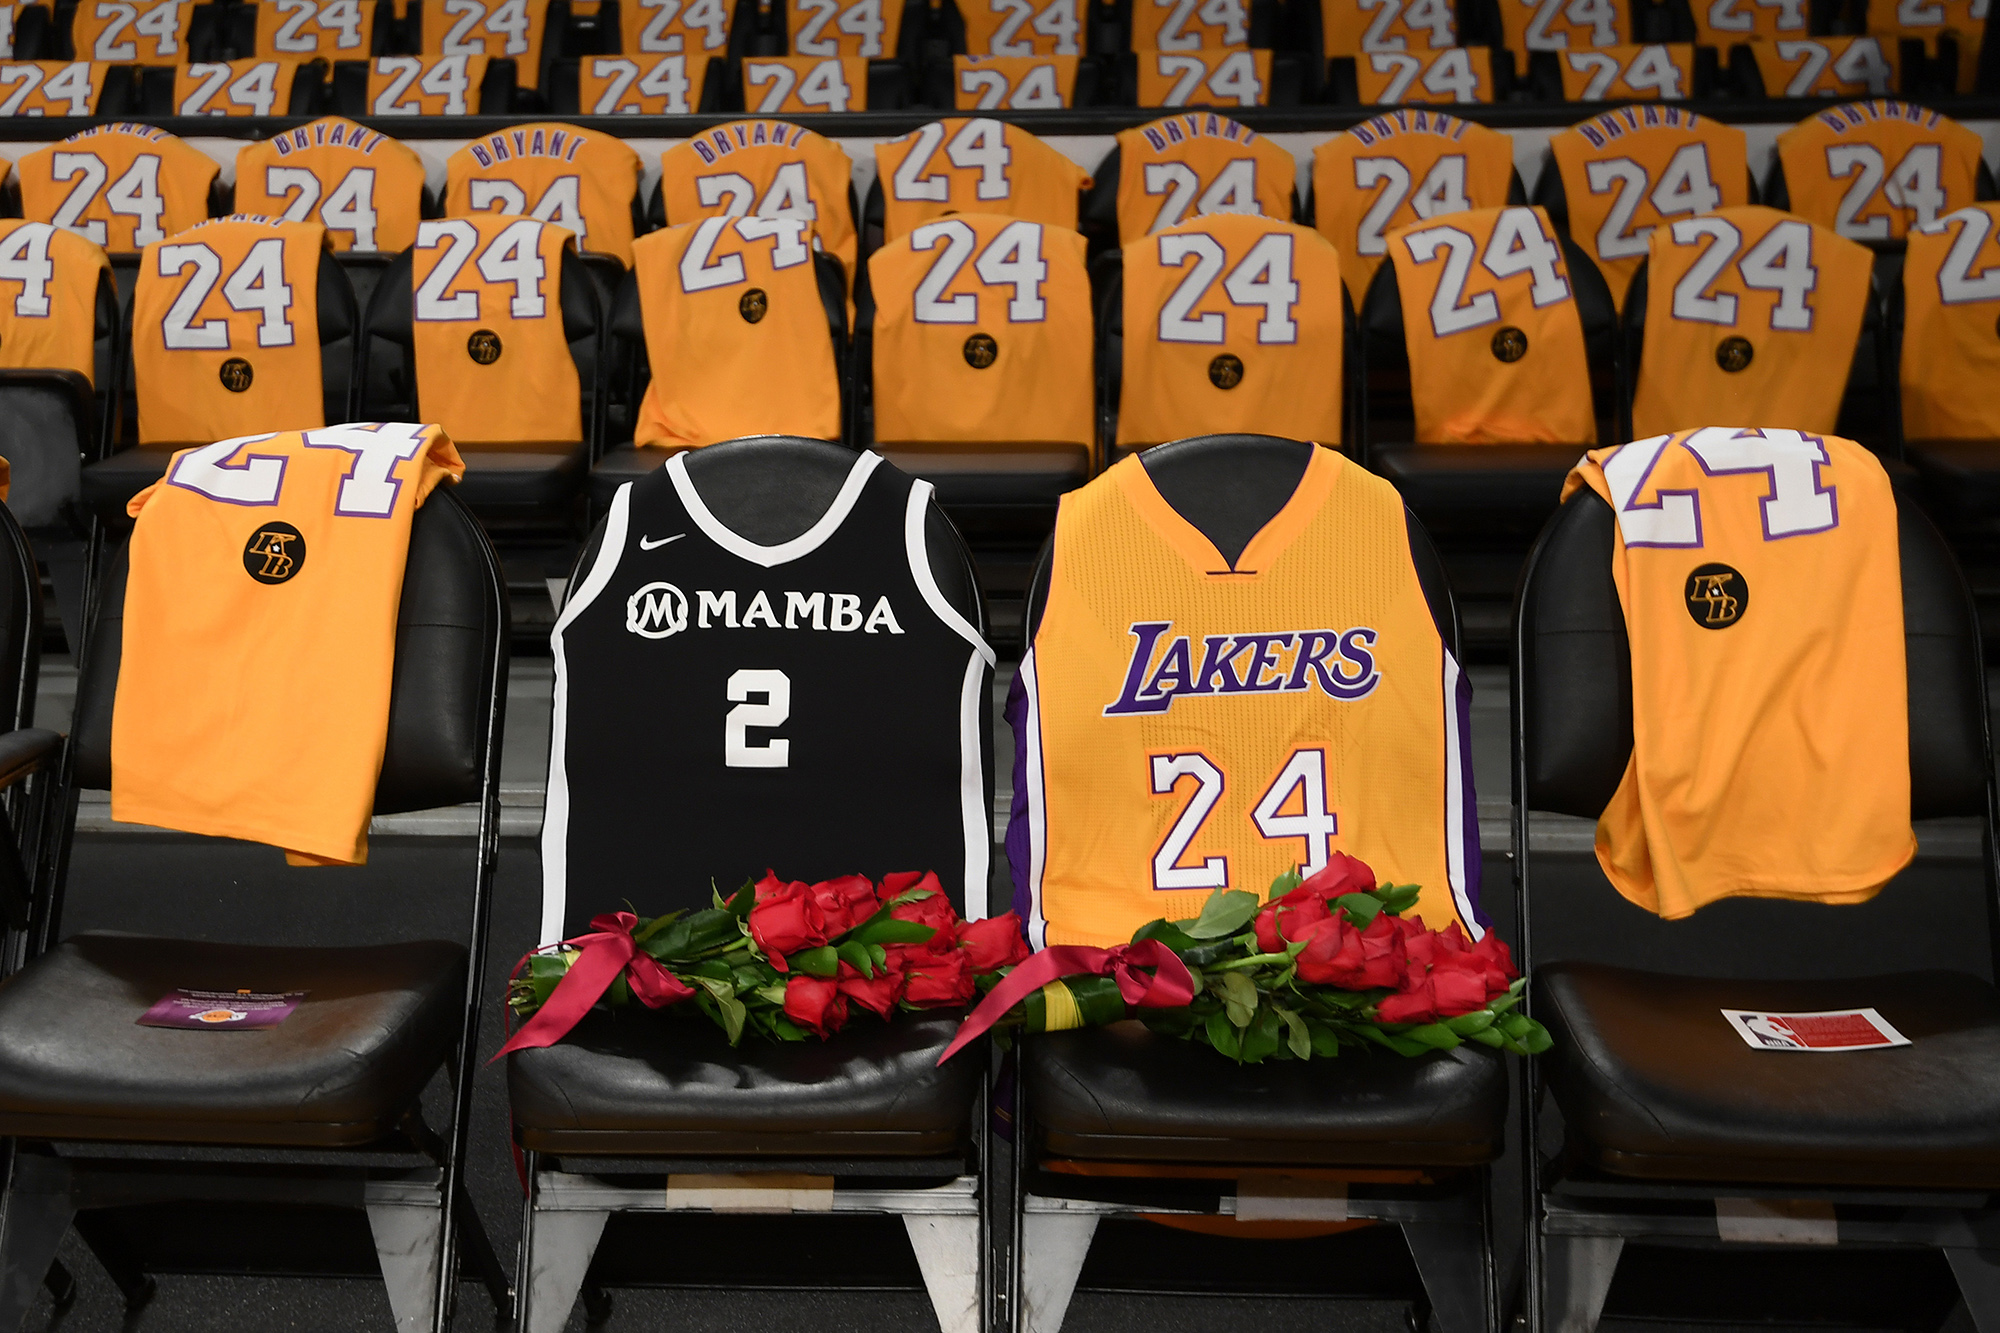 Lakers Cover Court Side Seats With Roses For Kobe Bryant Gianna